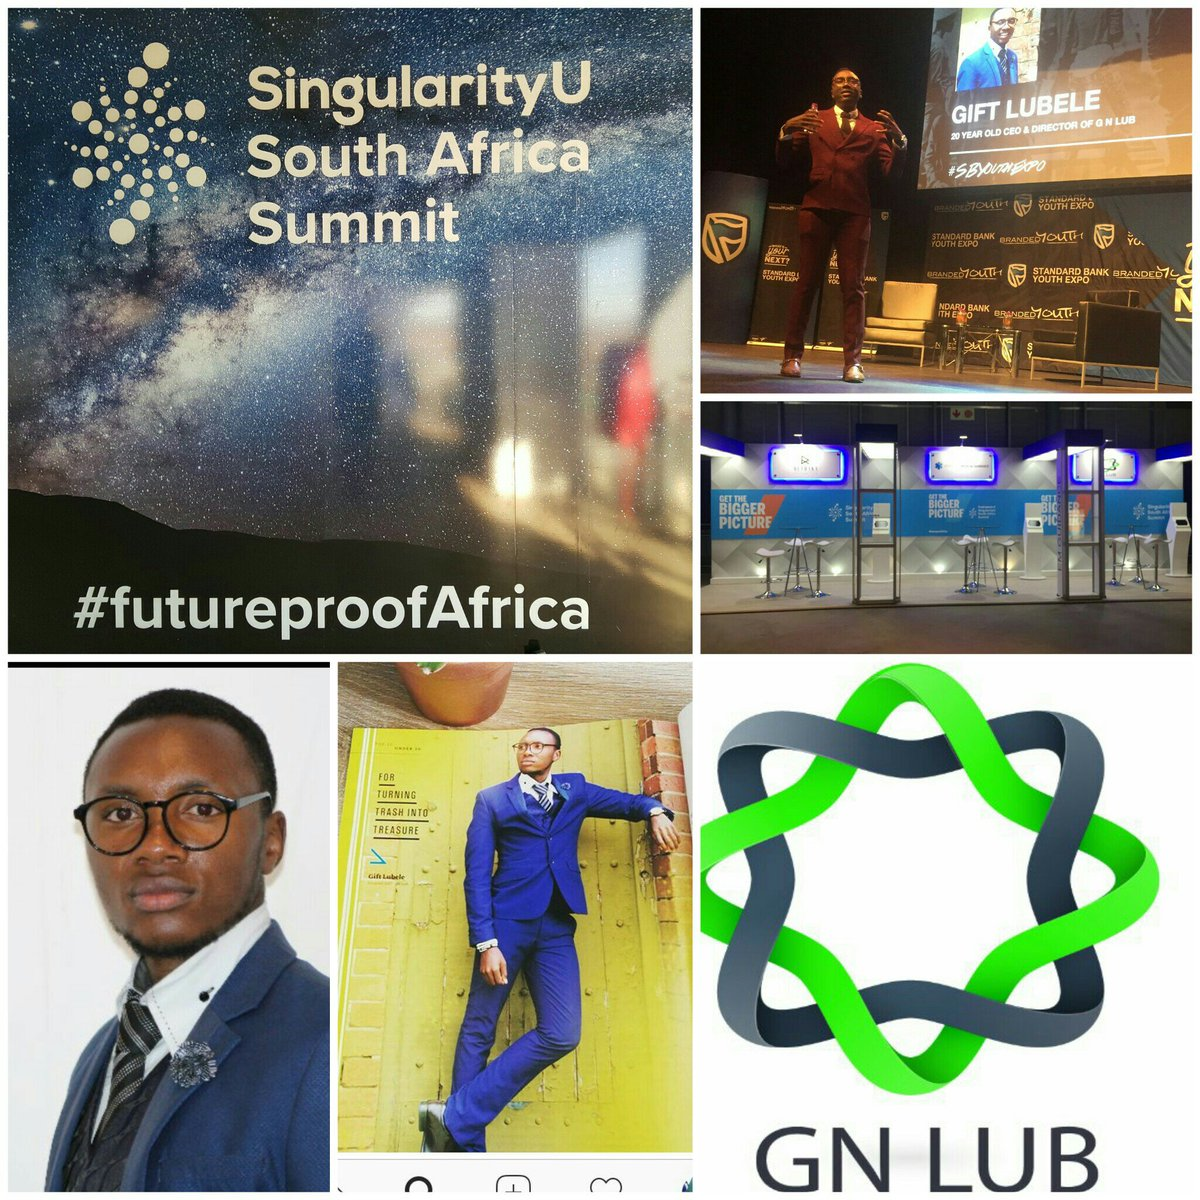 He&#39;s 20 &amp; doing amazing things in the space of recycling. Meet one of our youngest #entrepreneurs @SUSouthAfrica @SBGroup #FutureProofAfrica<br>http://pic.twitter.com/7AOFzkvohj